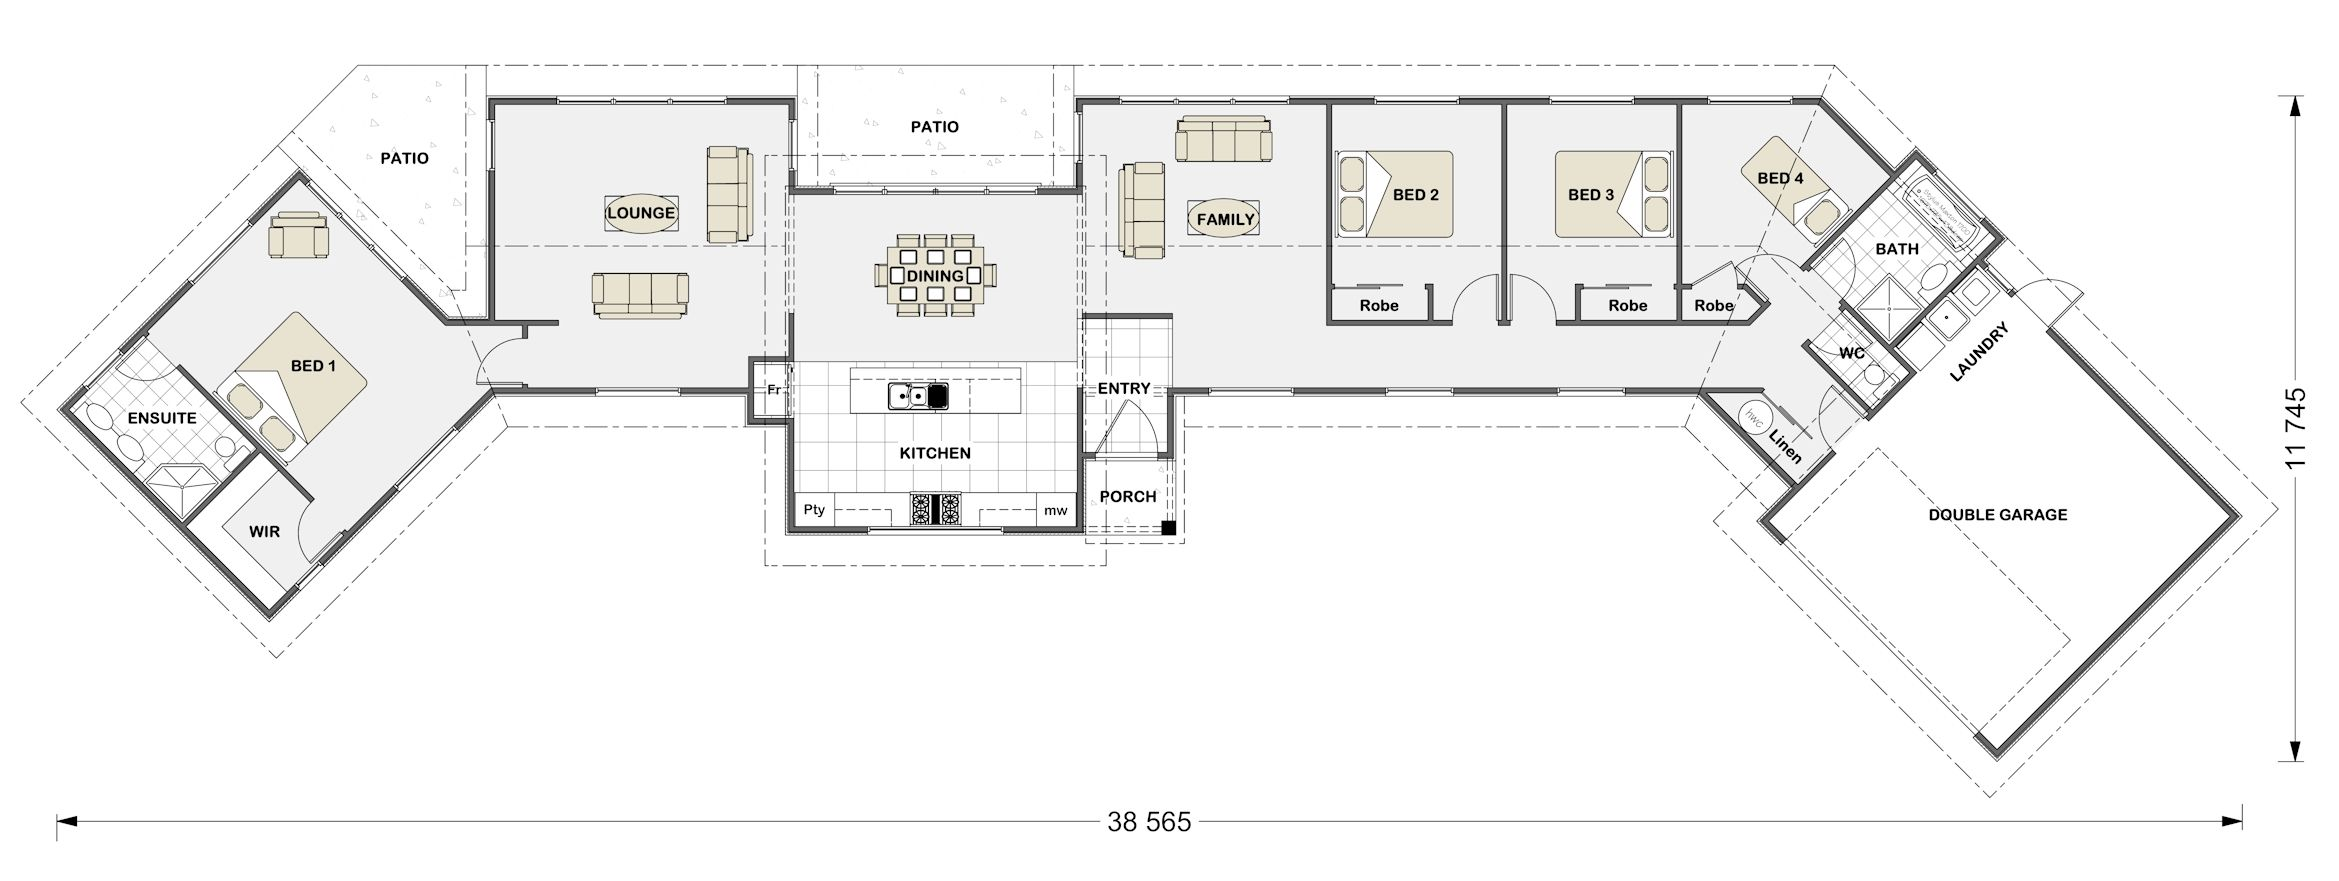 Stonewood Homes Floor Plans Part - 25: Stonewood - Like The Master Bedroom Being Seperate · House FloorBuilding ...